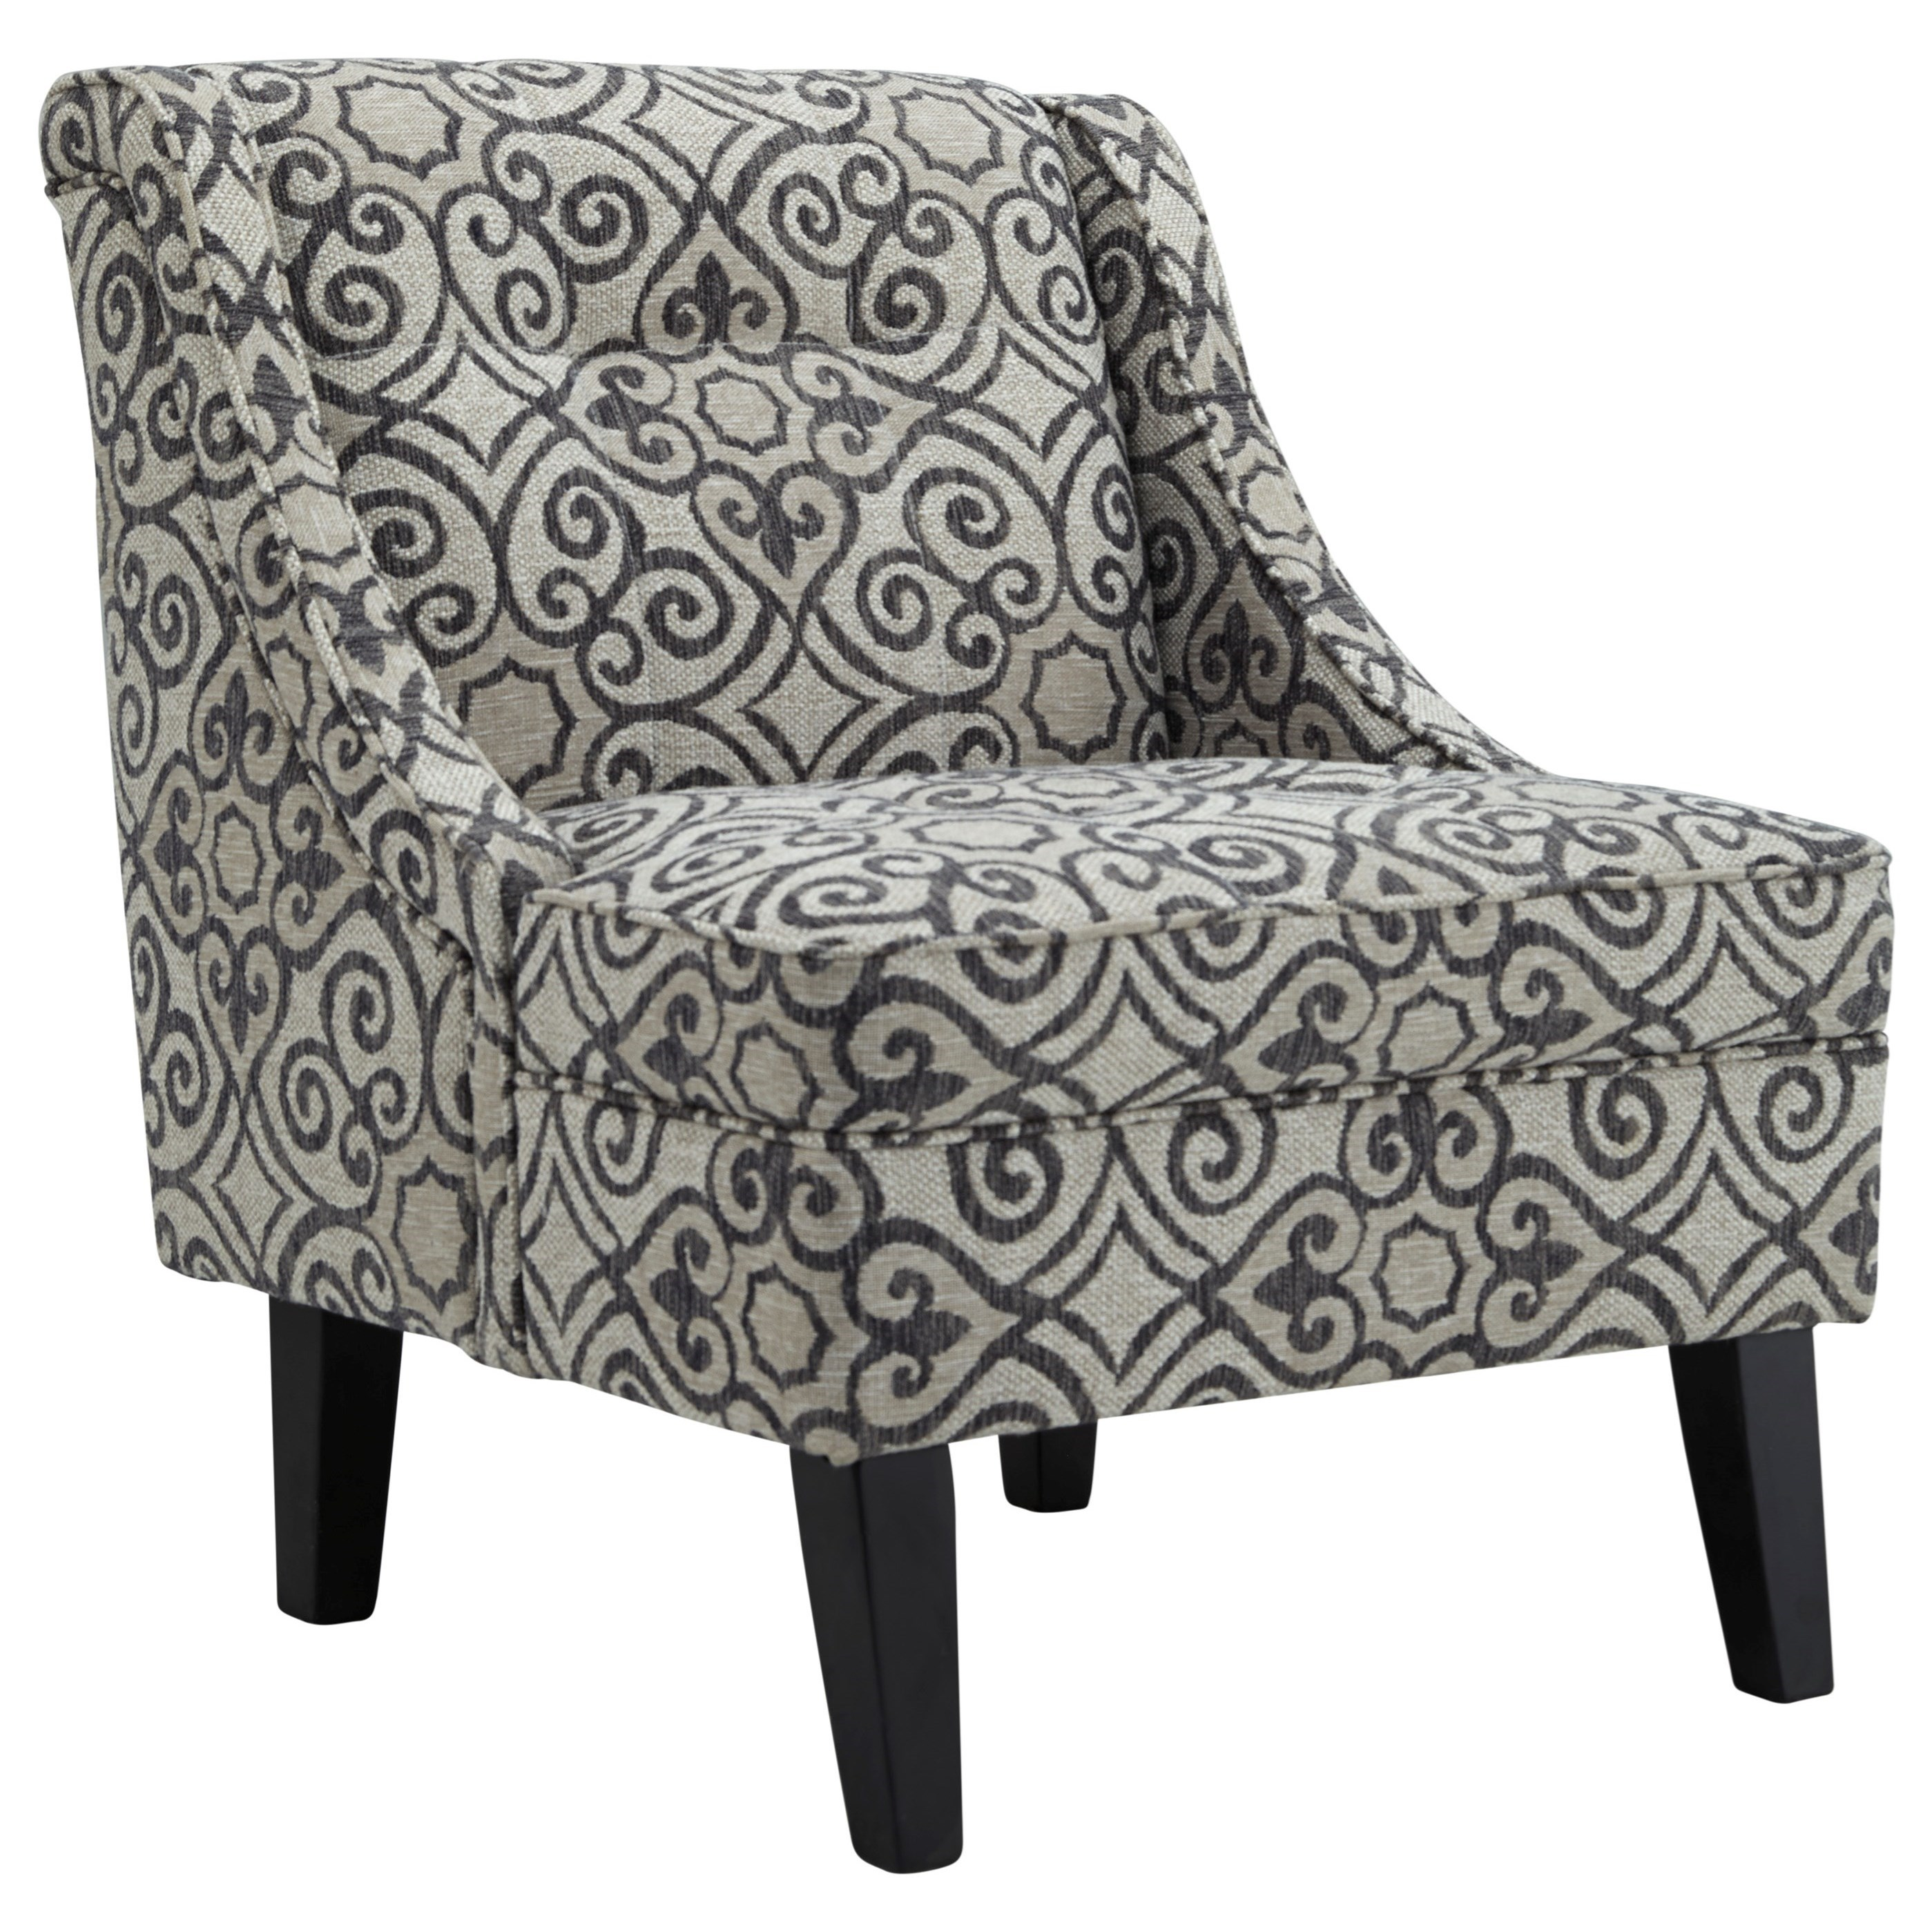 Ashley Furniture Kestrel Accent Chair With Gray Cream Pattern Fabric Wayside Furniture Upholstered Chairs